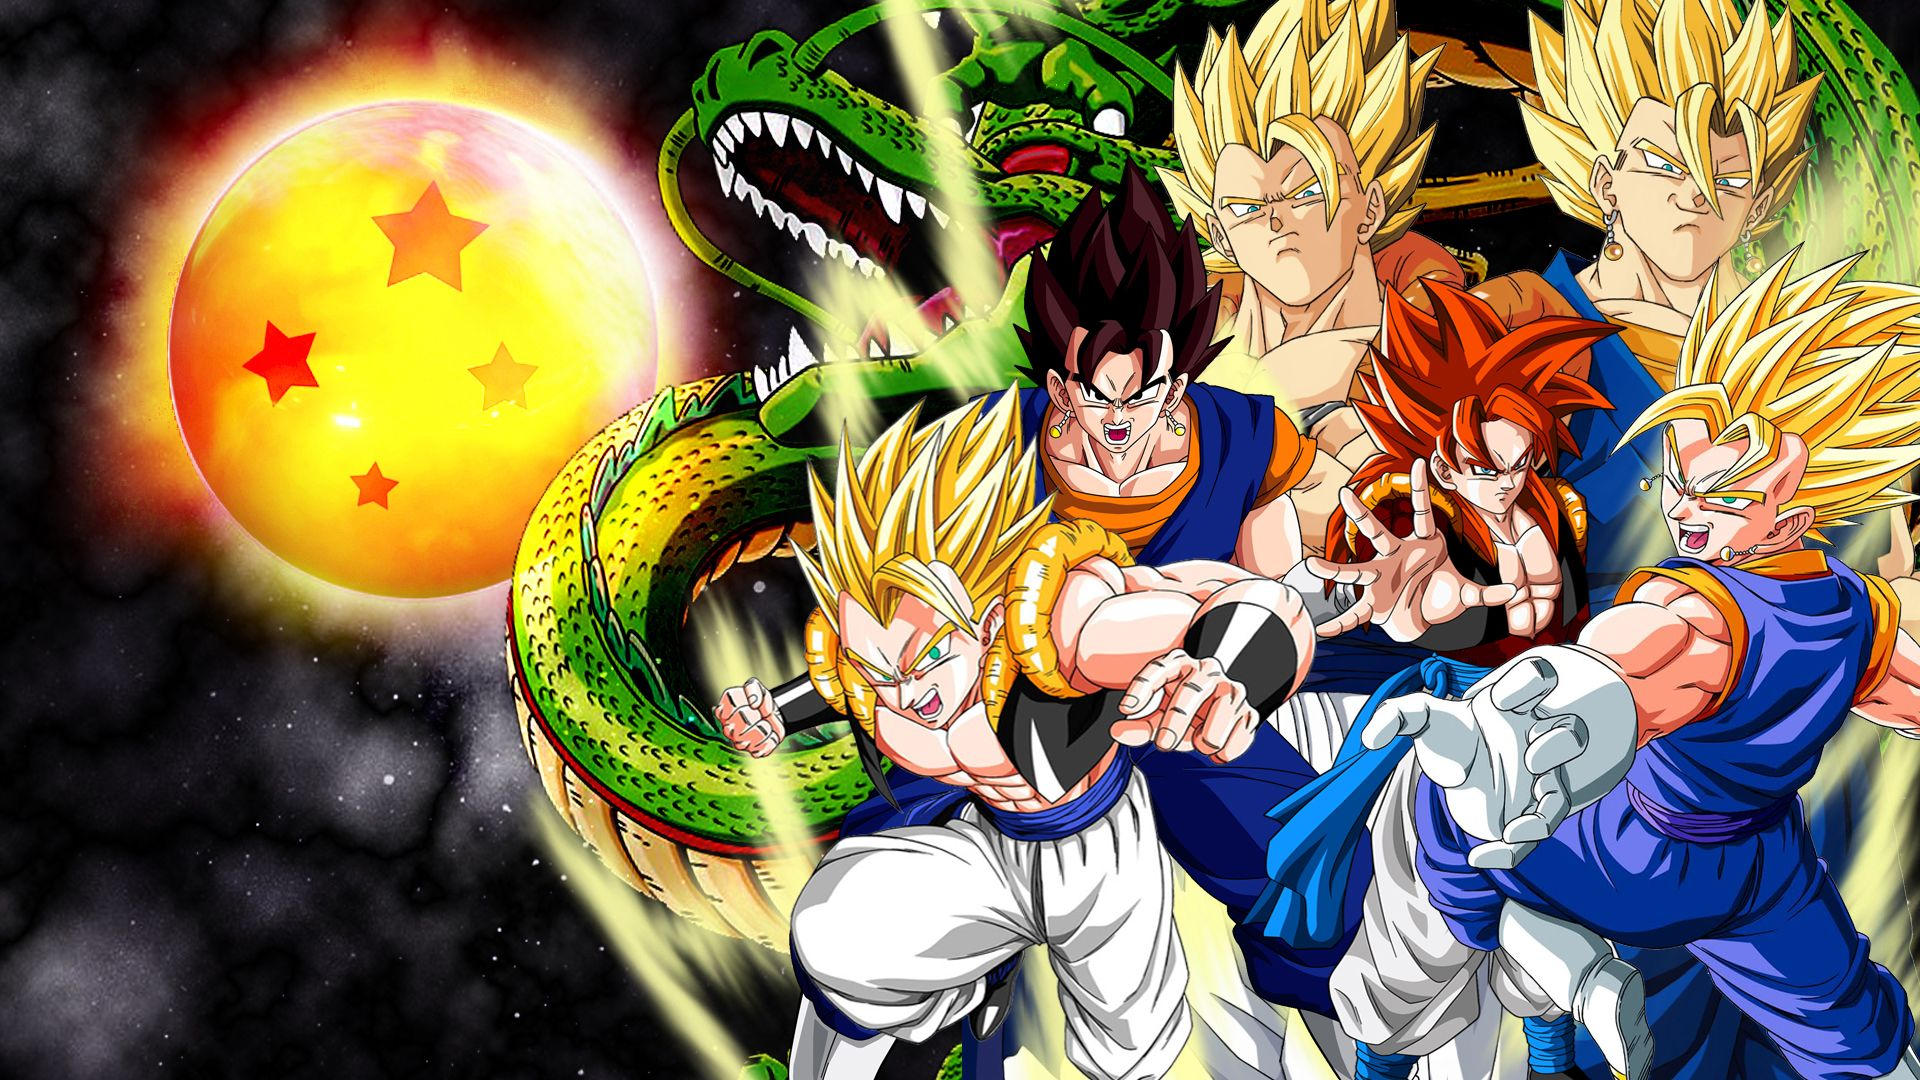 dragon ball z free wallpaper download | dragon ball | pinterest